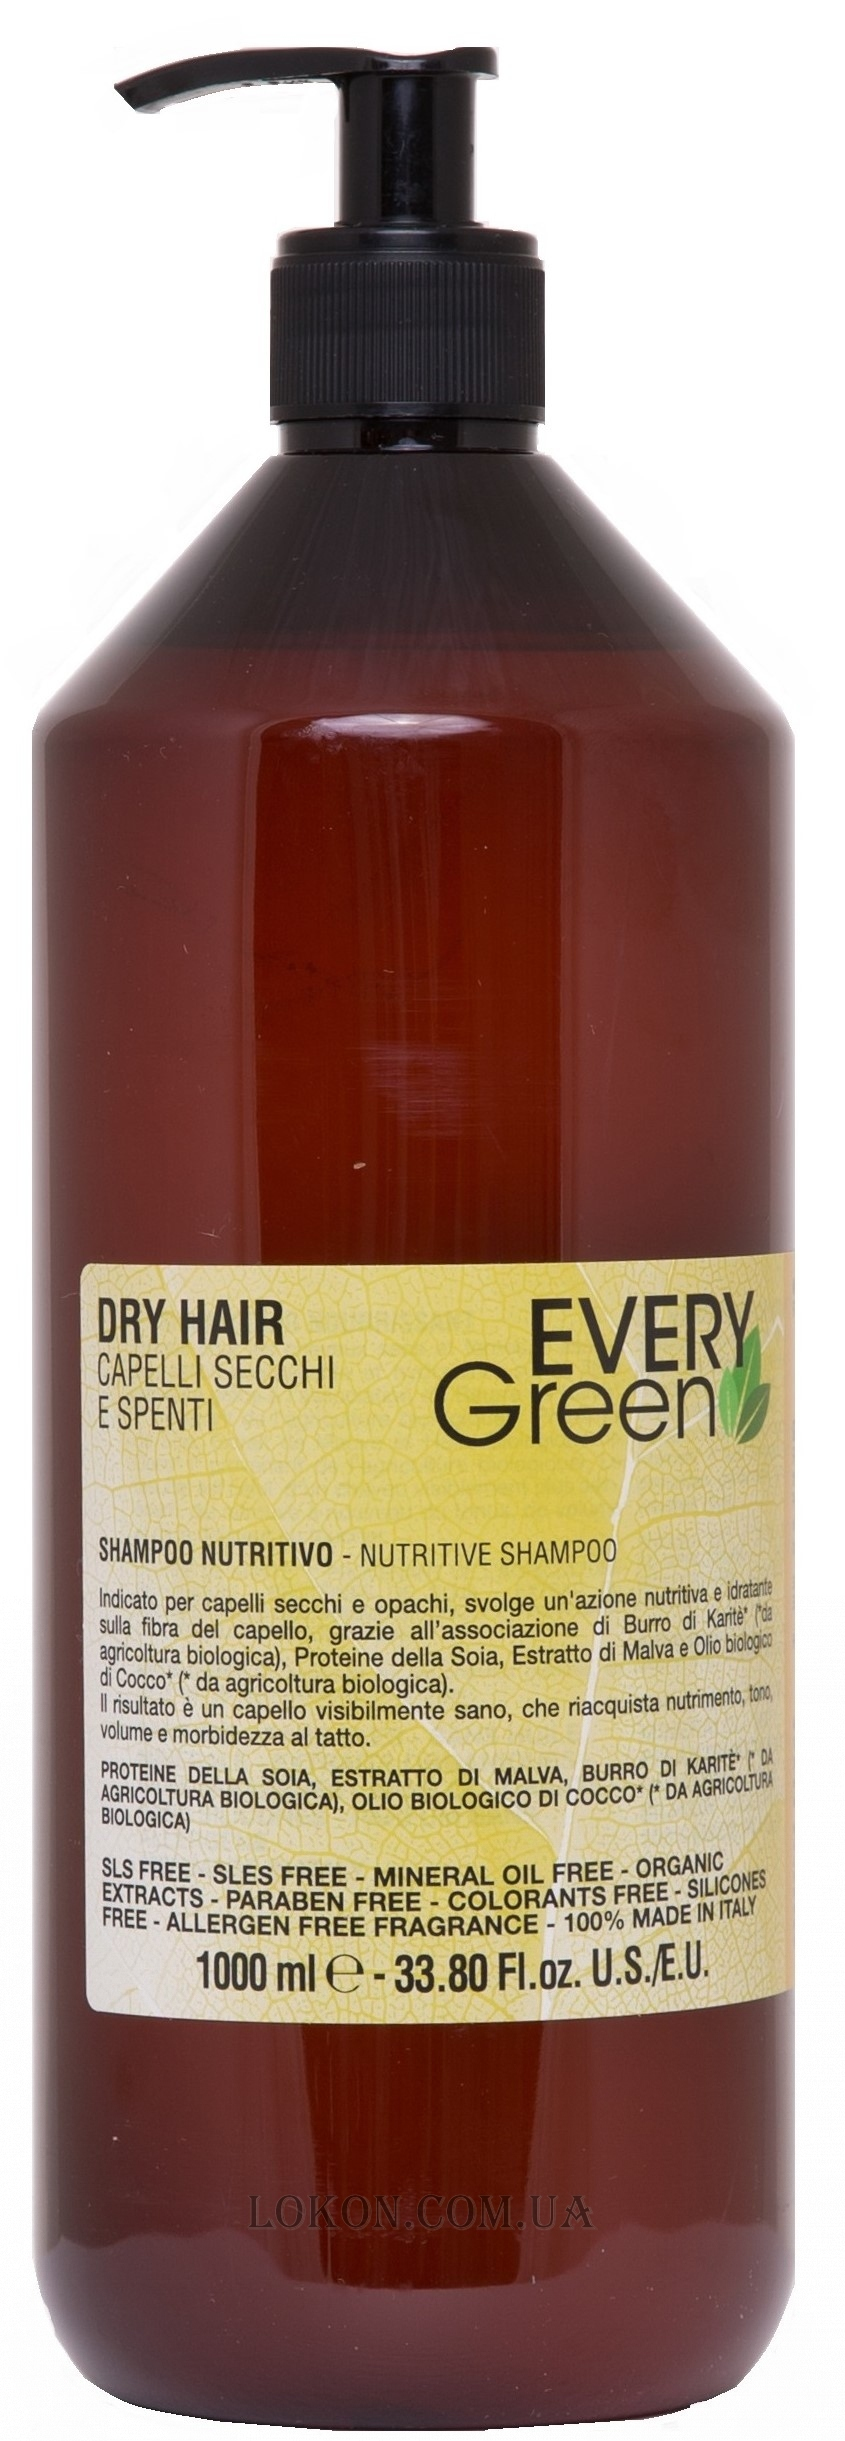 DIKSON Every Green Dry Hair Nutritive Shampoo - Шампунь для сухих волос